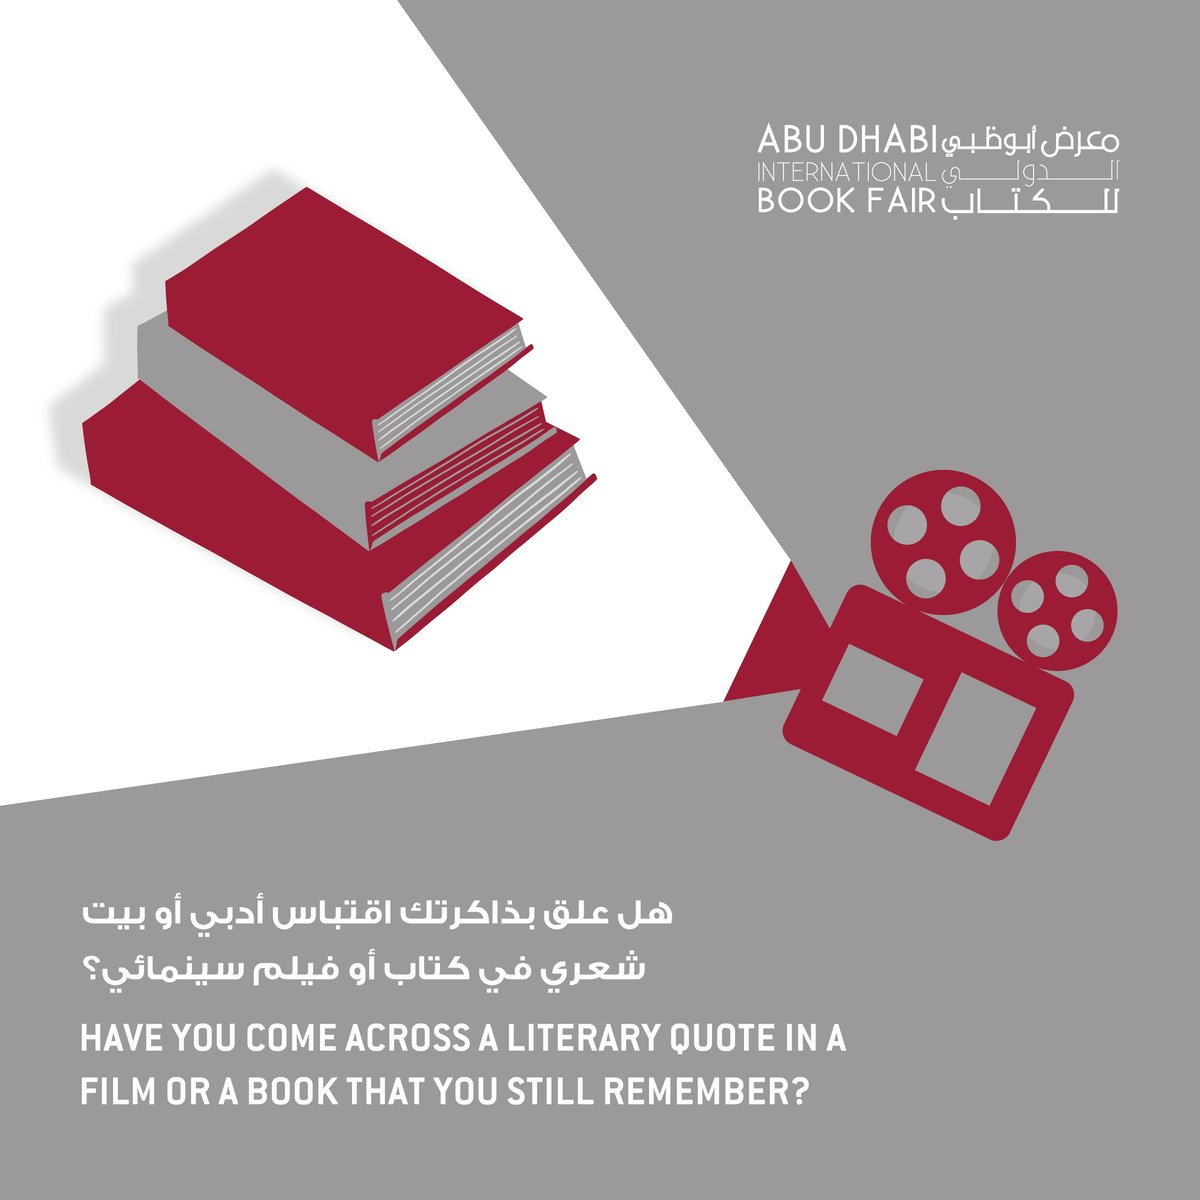 Have you come across a literary quote in a film or a book that you still remember? Whether it's from a literary work, film, or something else, write down the most memorable words your eyes - or ears - have come across.   #ADIBF #Reading #Books #Culture #InAbuDhabi #CulturAll https://t.co/IR9DD4ntOY